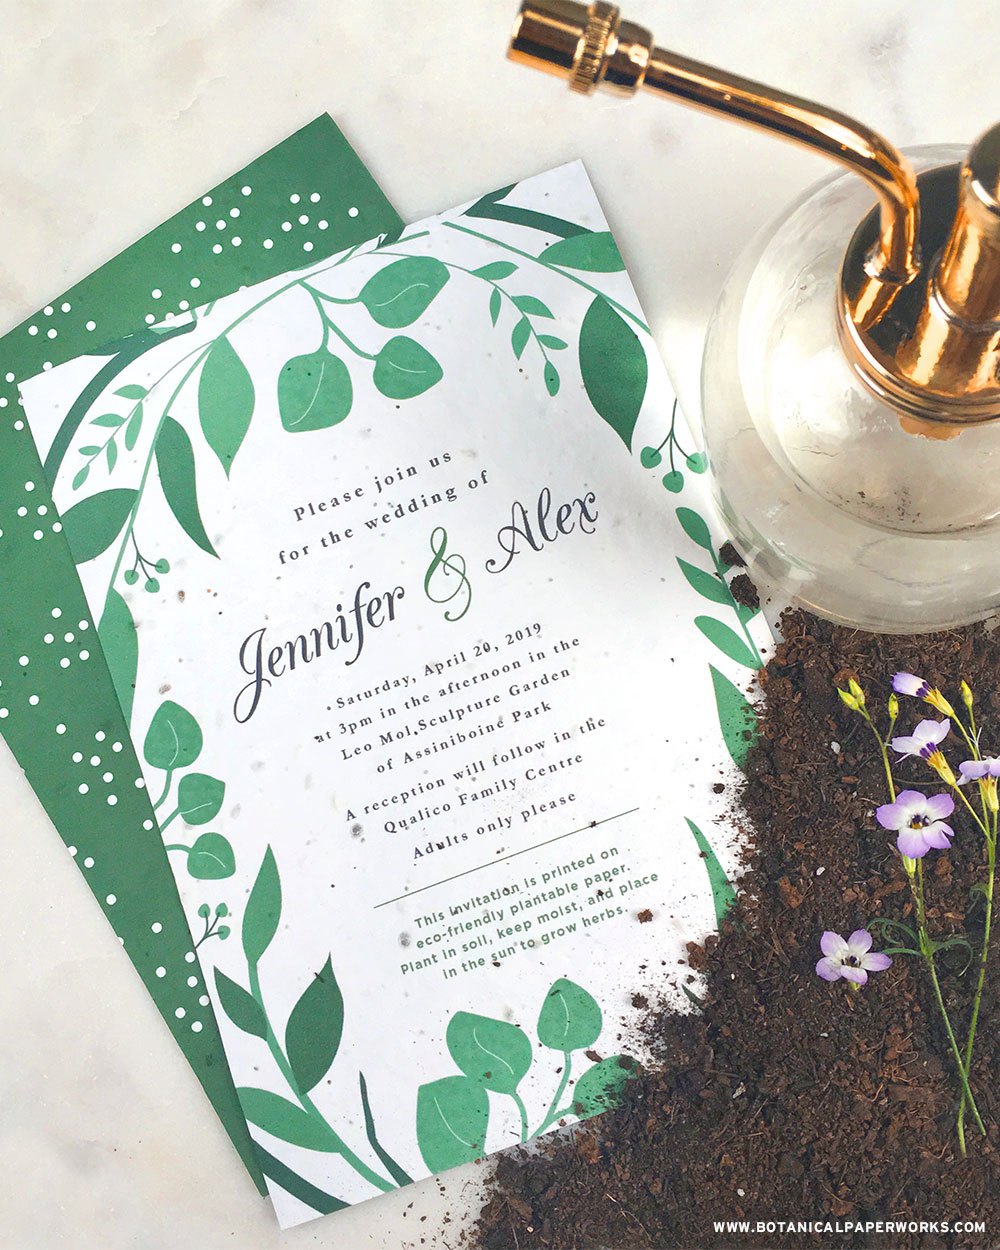 Plantable seed paper wedding invitations are the perfect match for garden party events!